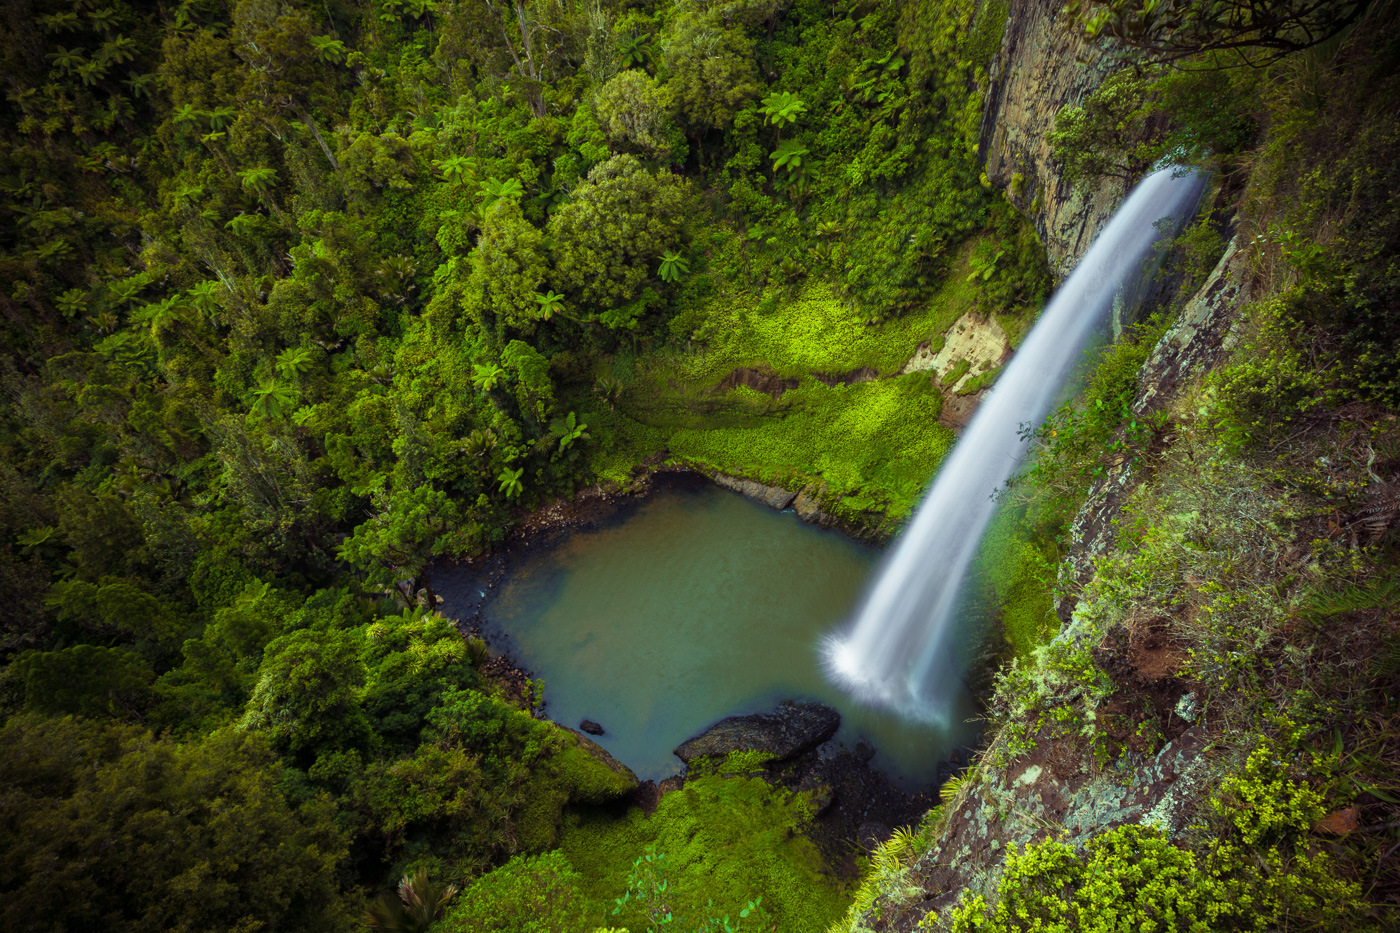 Just another one of the hundreds of incredible waterfalls around New Zealand